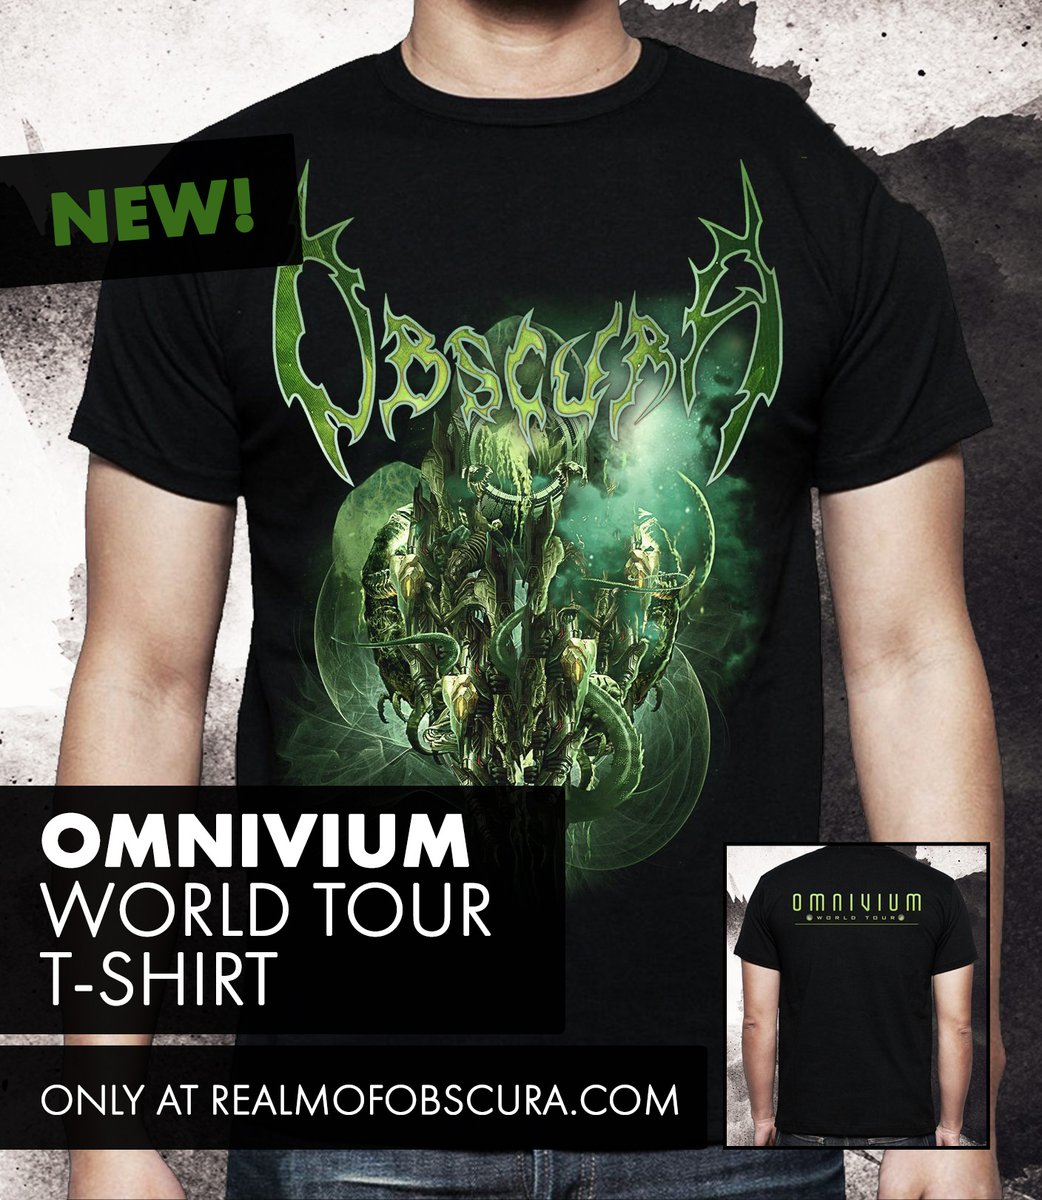 🚨 NEW: OMNIVIUM world tour shirt 🚨  Many of you were asking for it. Now we finally have this classic cover artwork shirt back in stock!  Head over to our webshop and get yours now: ➡️ https://t.co/DE7ExZpnsJ  #obscura #merch #omnivium #deathmetal #technicaldeathmetal https://t.co/T1mBj3Hf5U